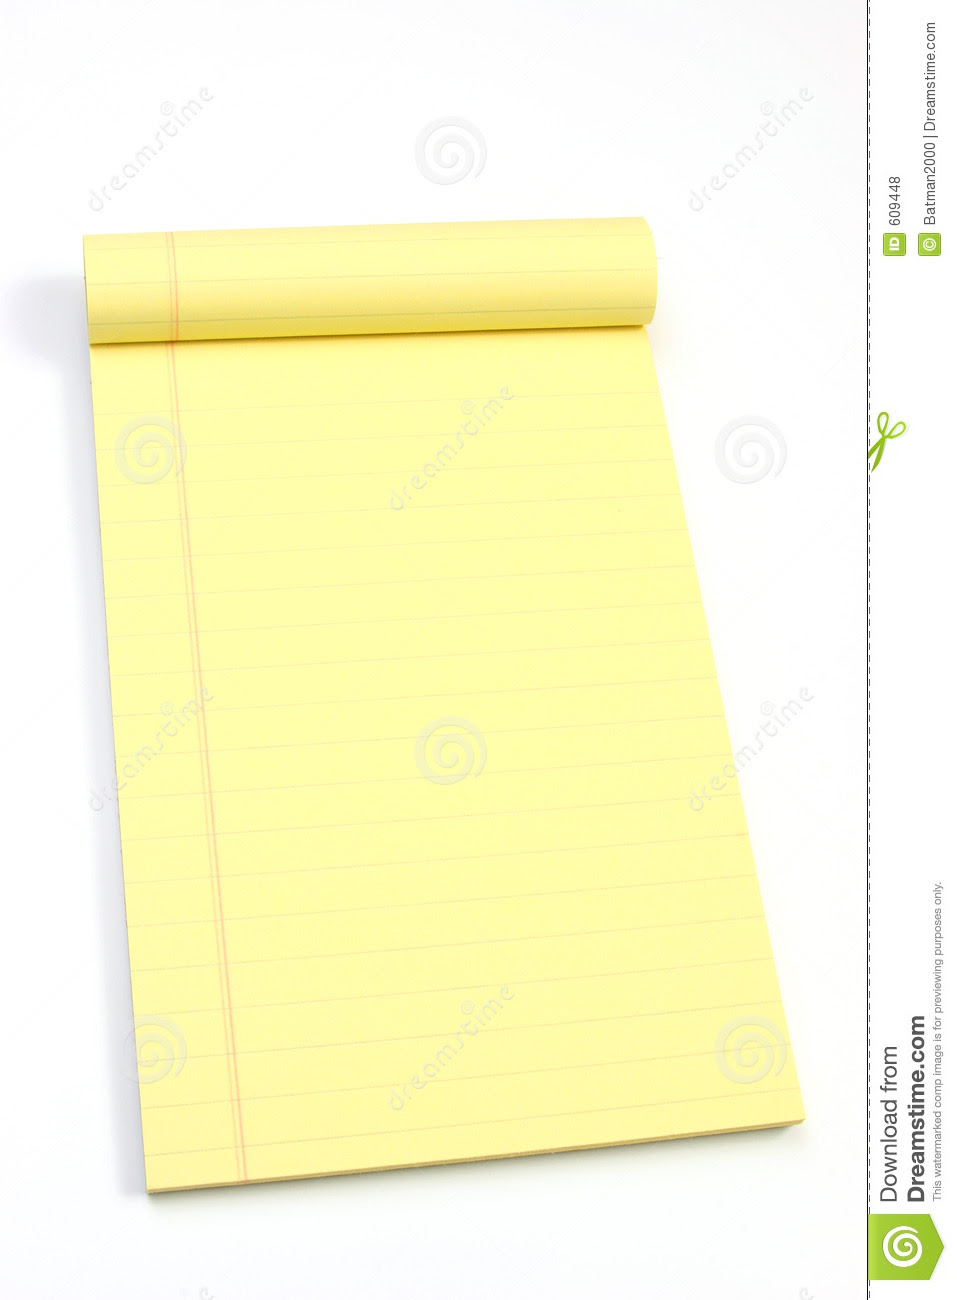 Blank Yellow Pages Oblique Royalty Free Stock Photos - Image: 609448